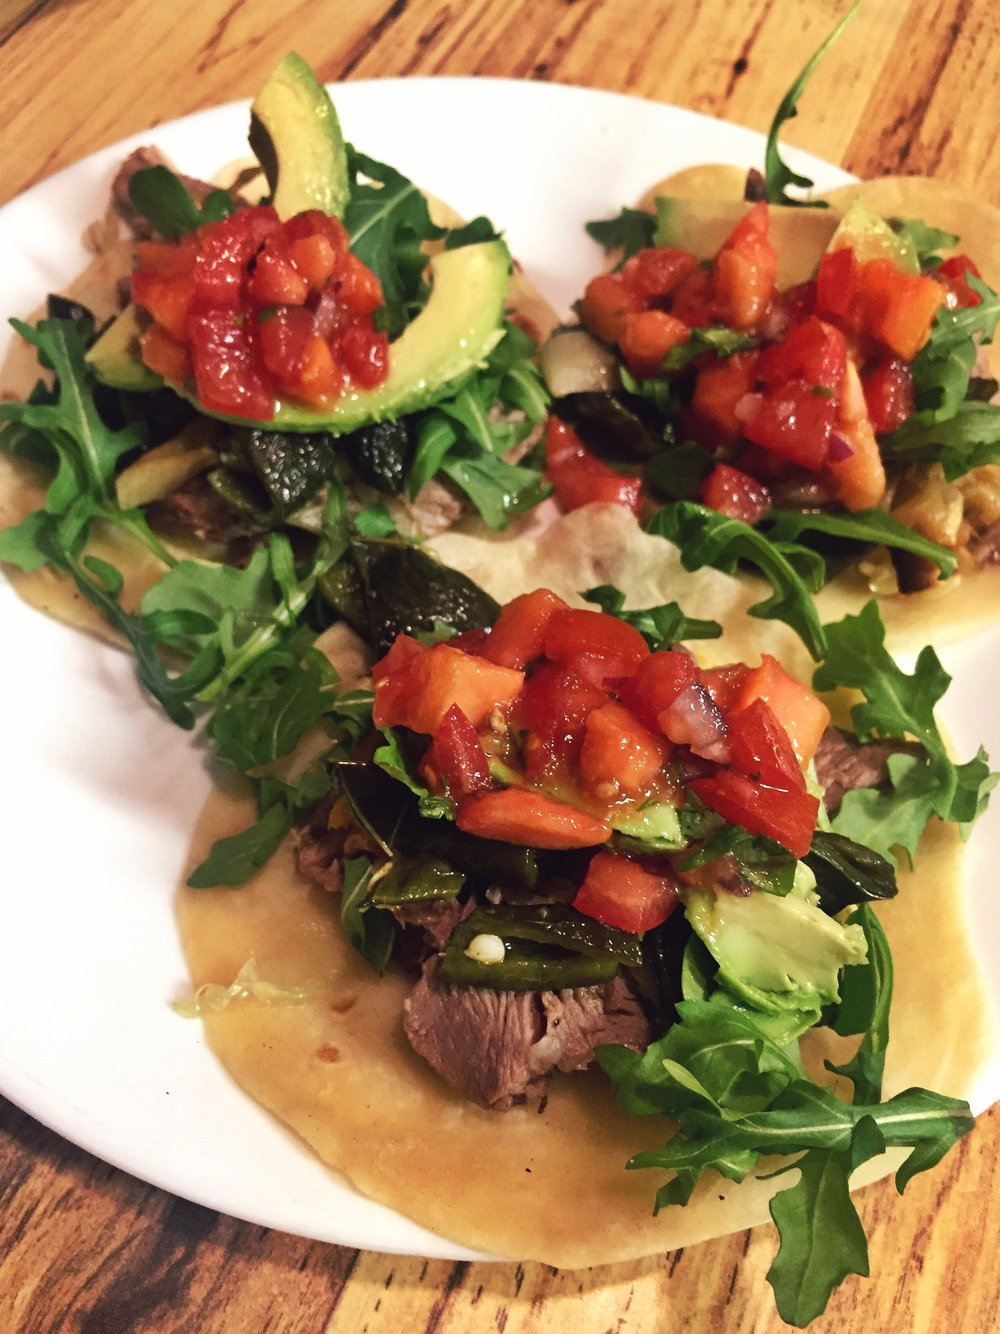 Pork tacos with roasted poblano peppers, arugula, avocado, and fresh papaya salsa with handmade flour tortillas.